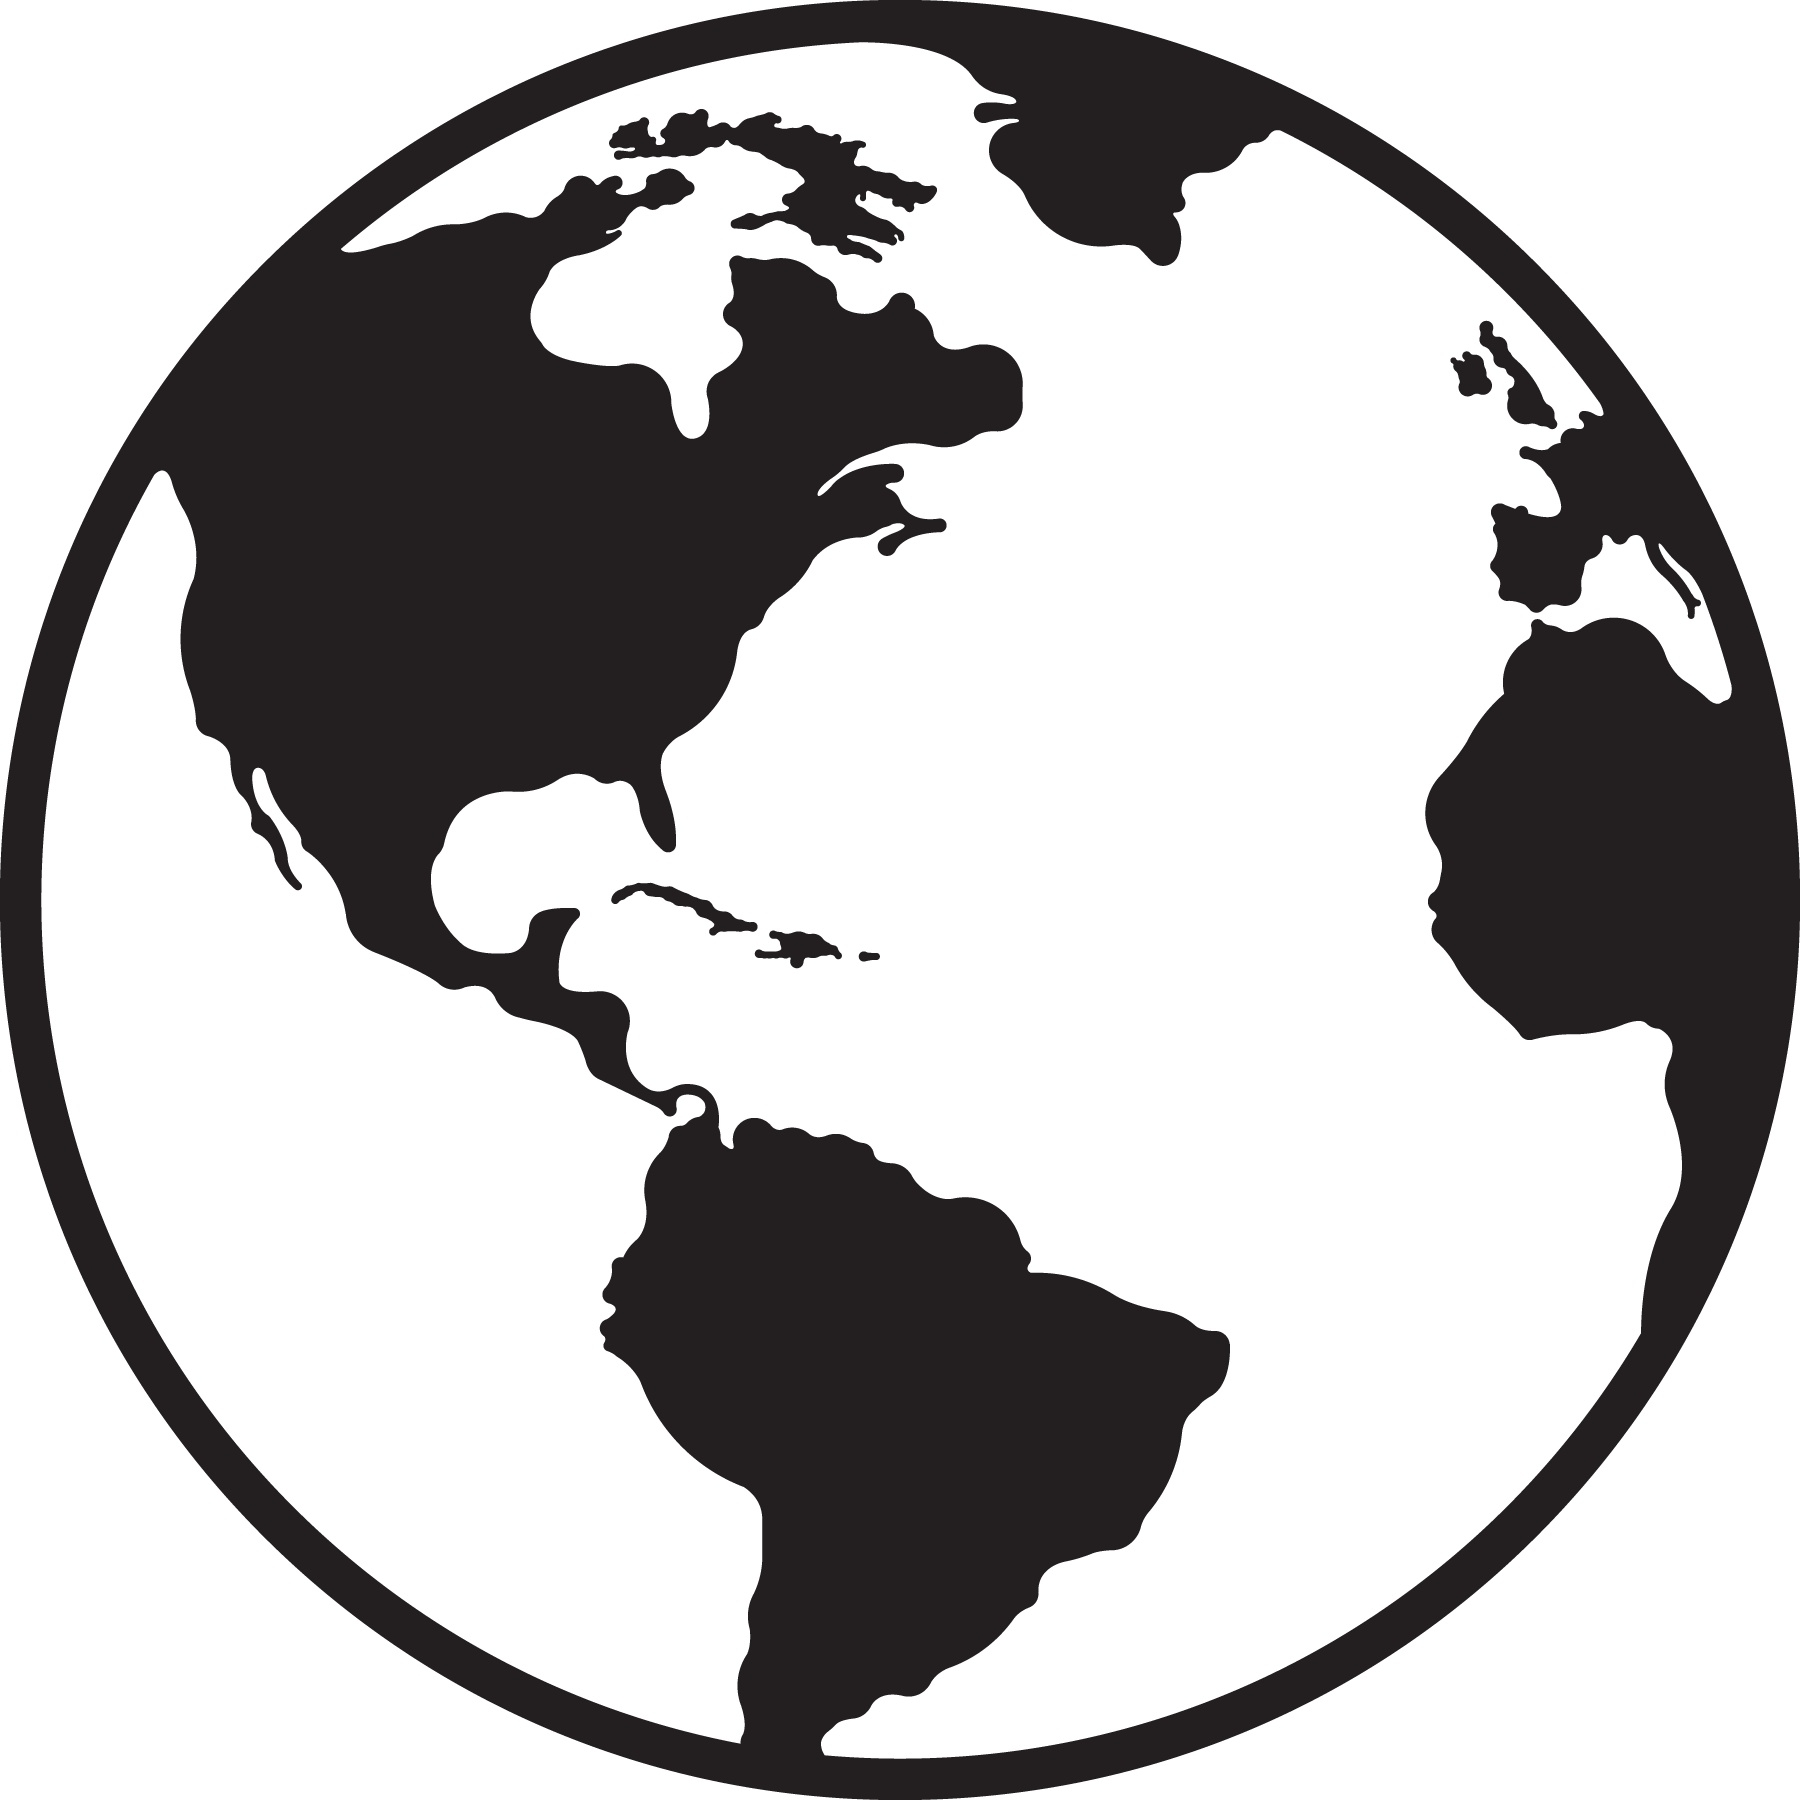 Picture of earth clipart black and white image library stock Earth clipart black and white Awesome Globe Clipart Black ... image library stock